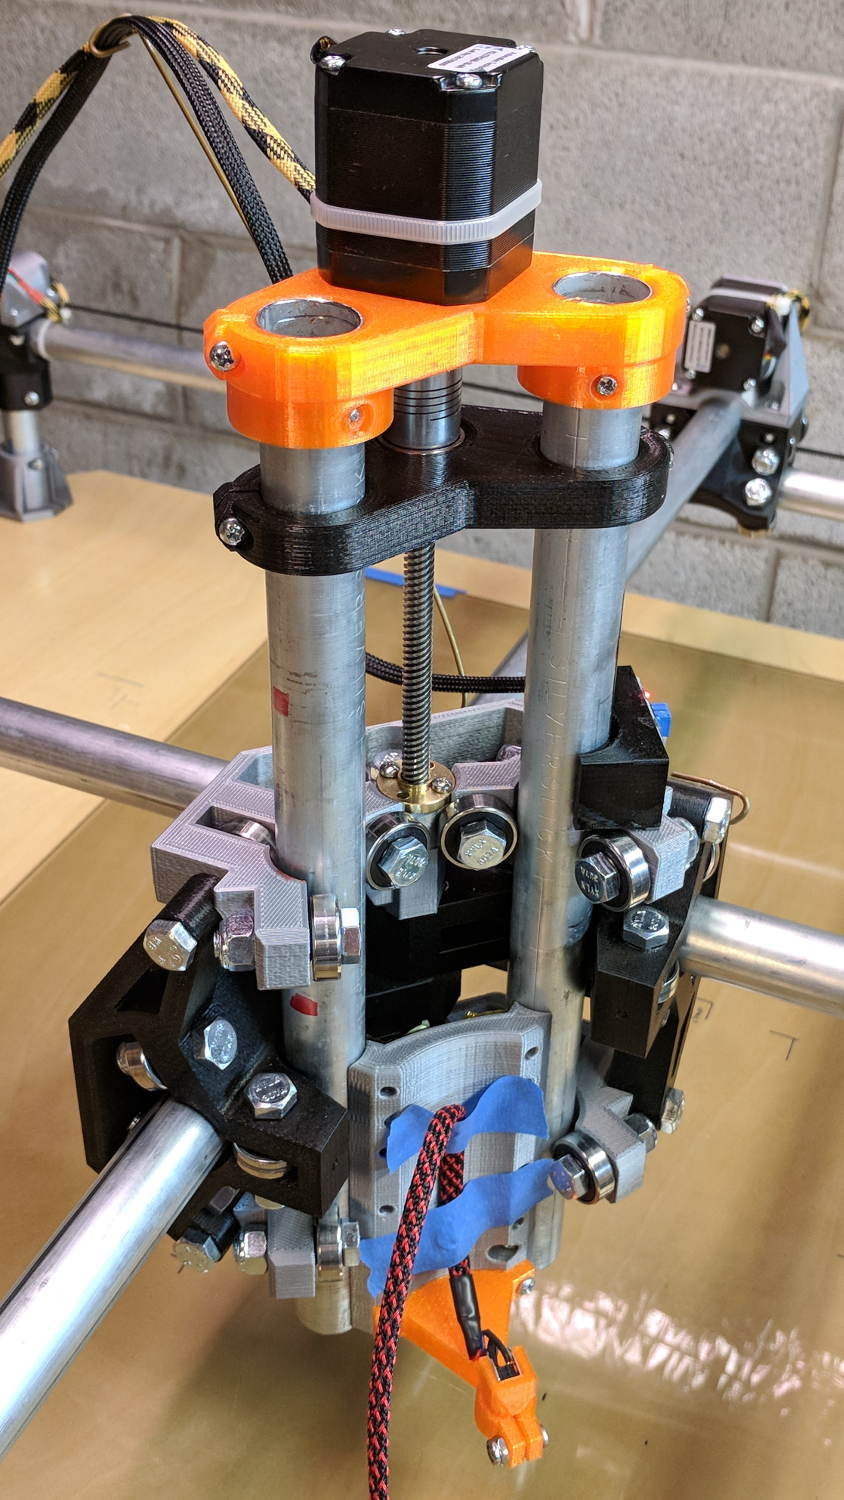 MPCNC: Reinforced Z-axis Motor Mount | The Smell of Molten Projects